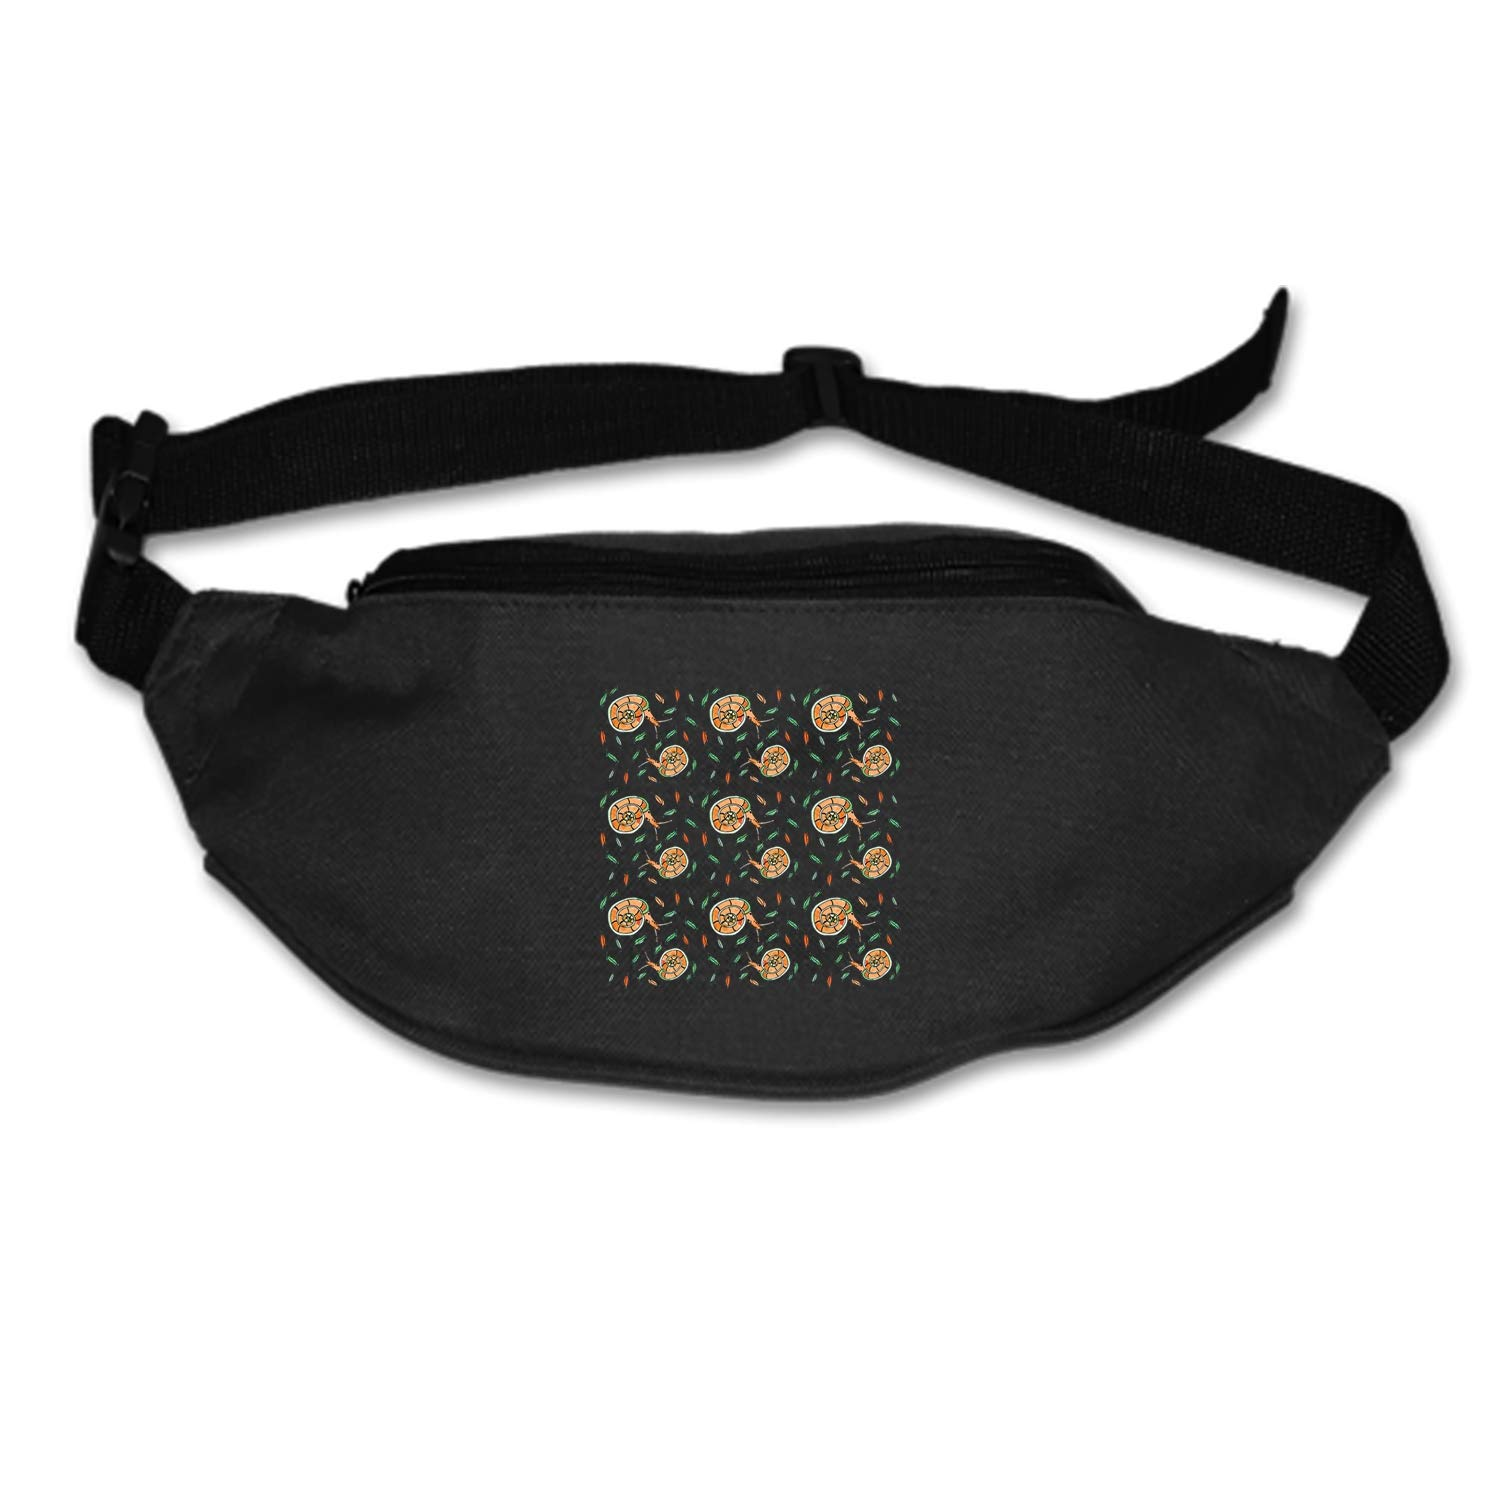 ItS Ok To Be A Snail Sport Waist Pack Fanny Pack Adjustable For Hike